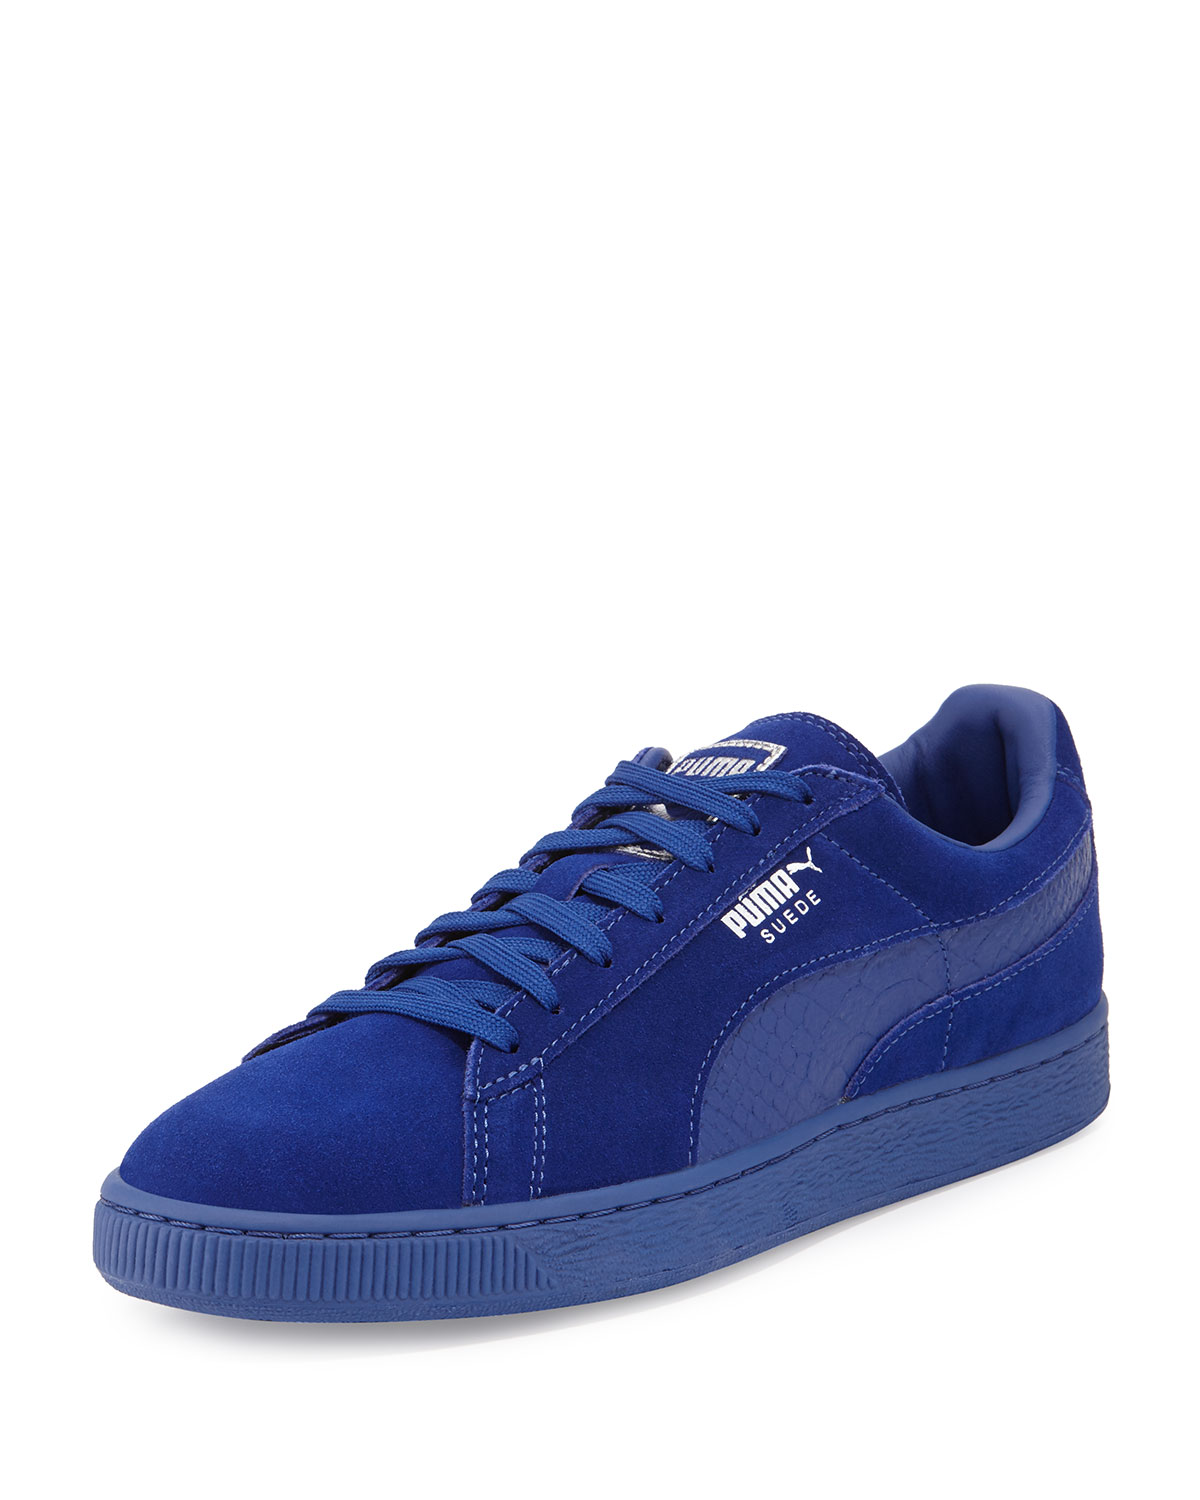 best cheap 3ed81 c7e18 Men's Suede Classic Mono Reptile Sneakers, Royal Blue